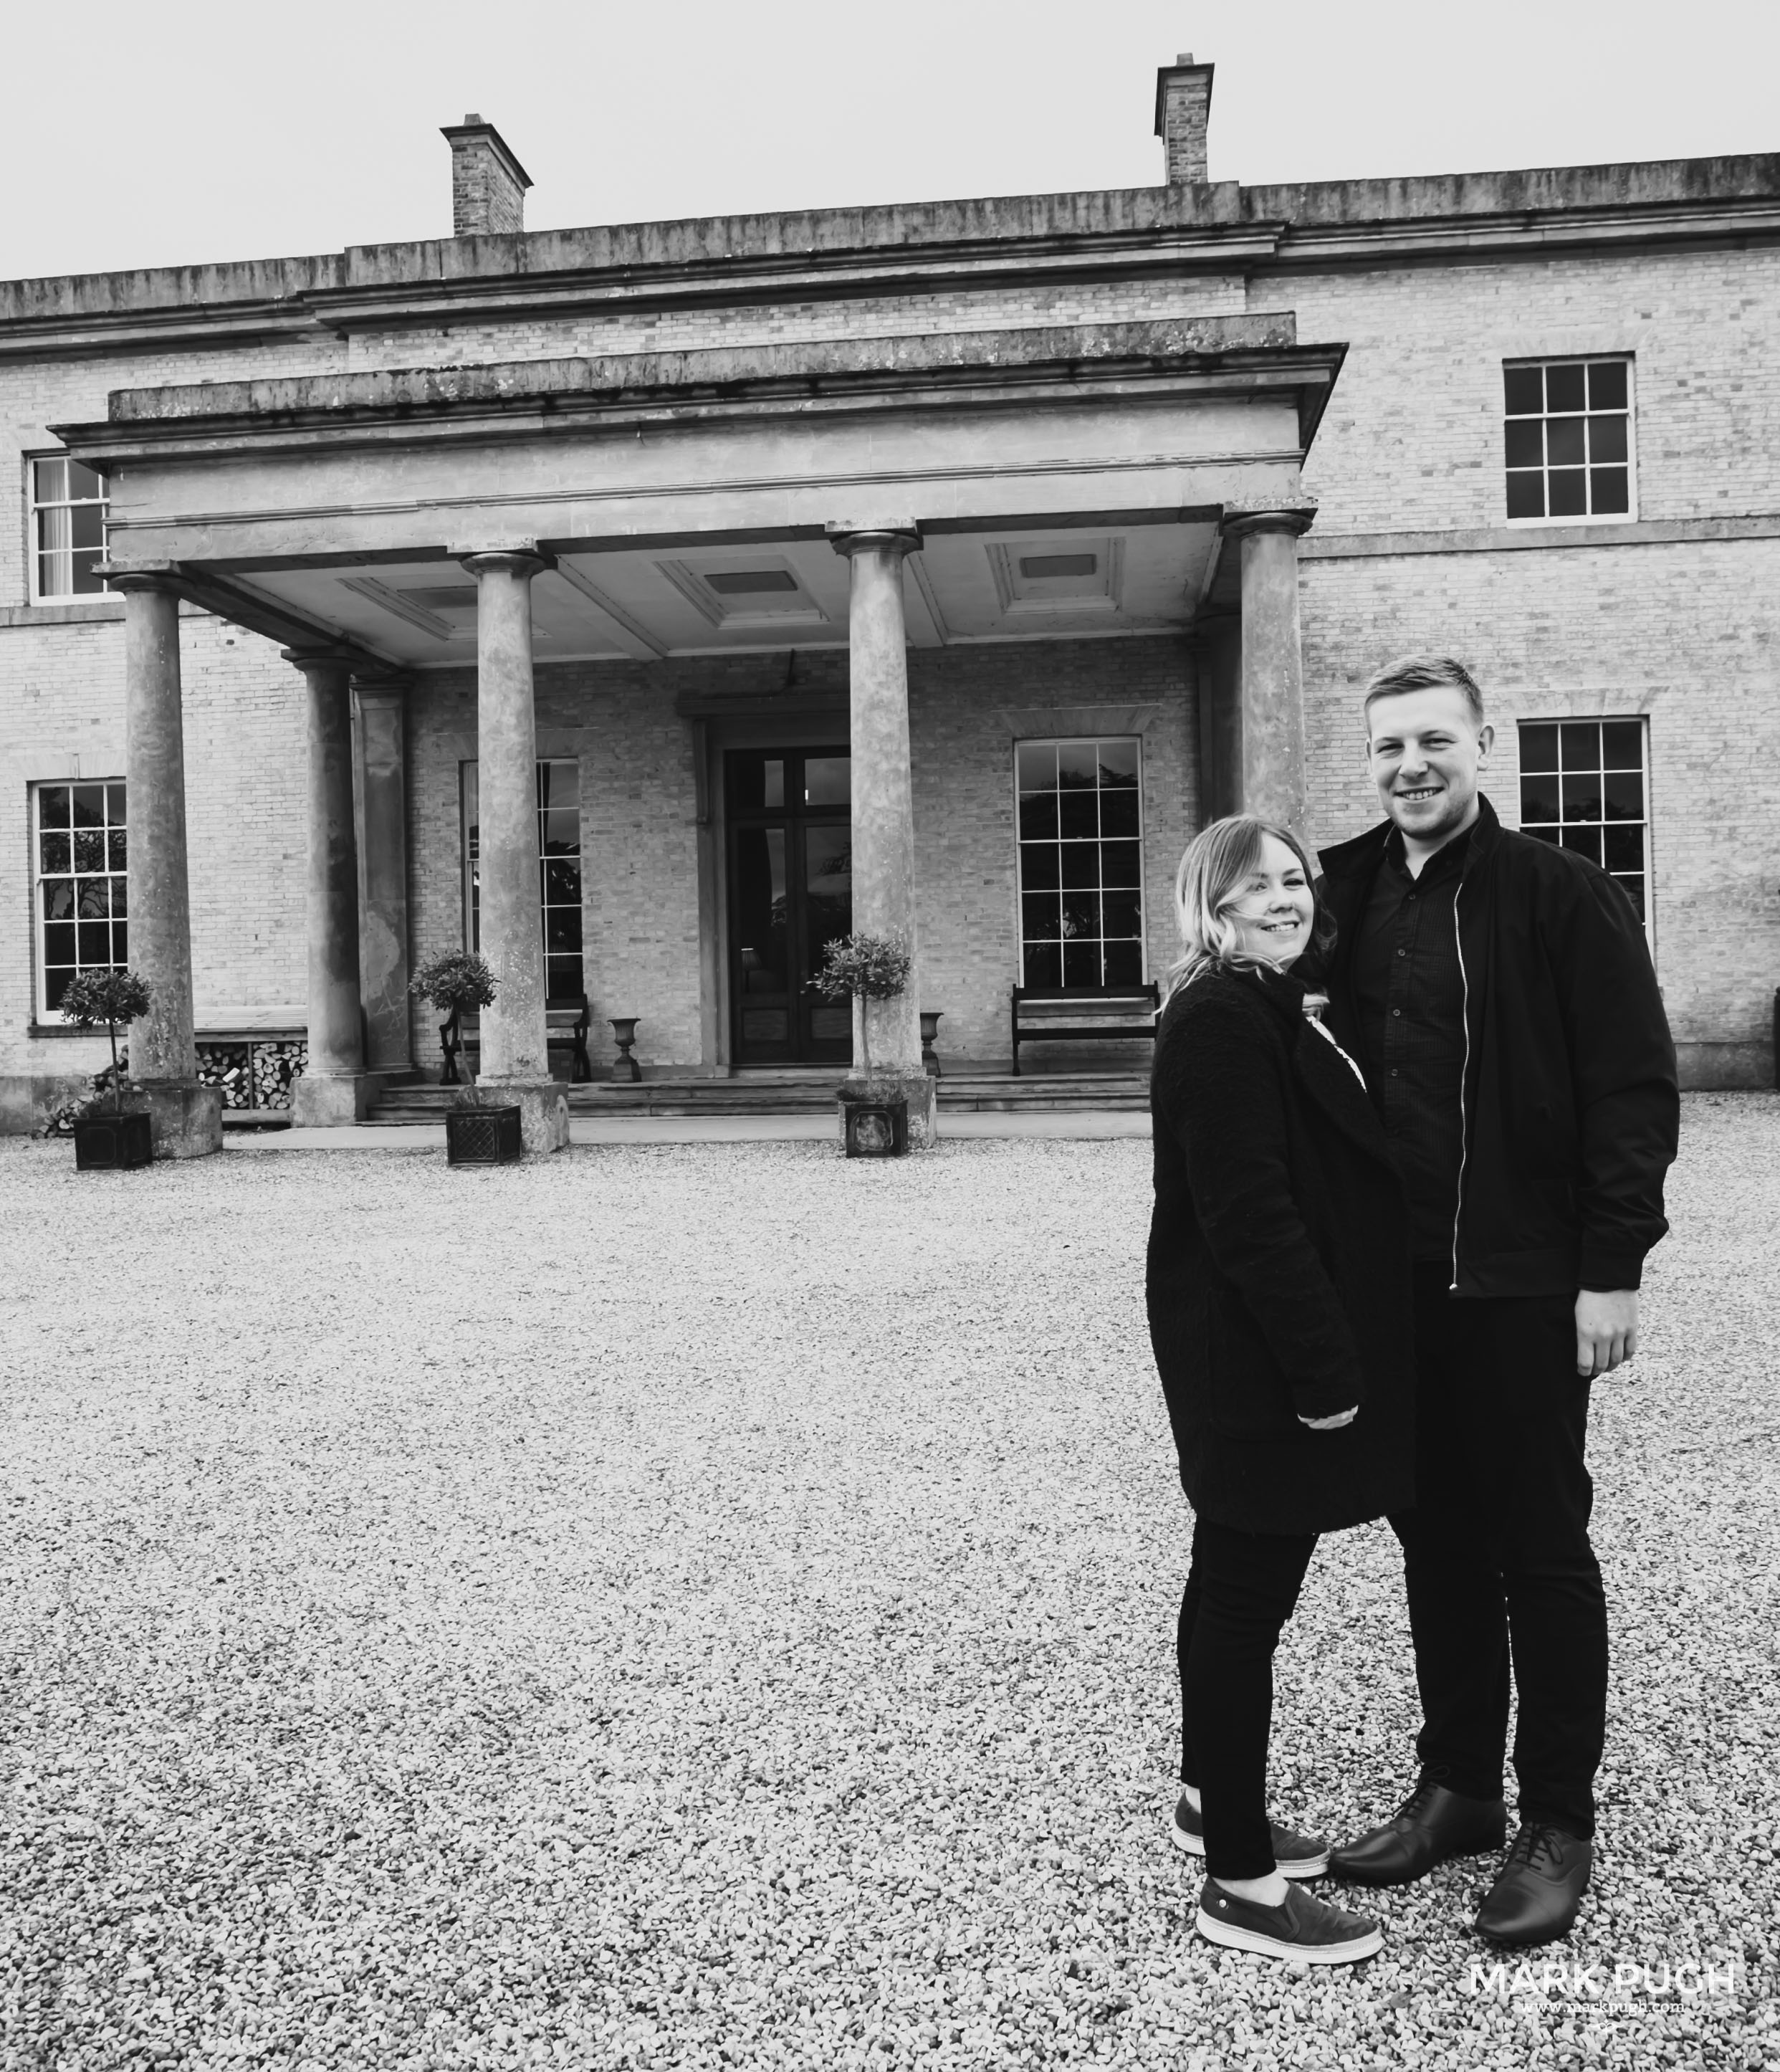 016 - Hayley and Tom - fineART preWED photography at Stubton Hall NG23 5DD by www.markpugh.com Mark Pugh of www.mpmedia.co.uk_.JPG